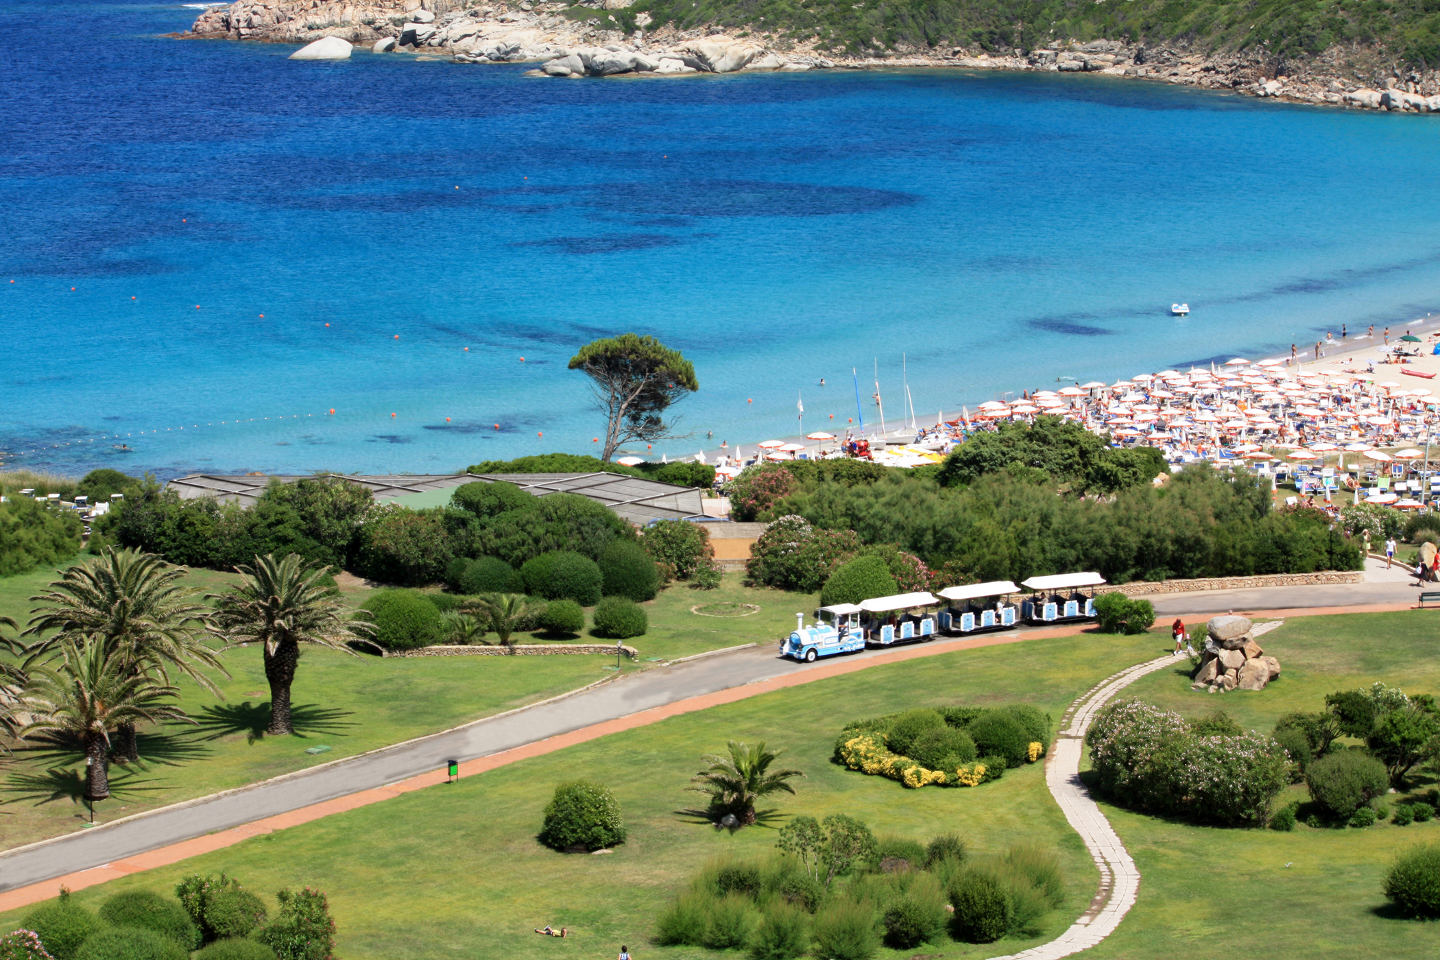 Holiday in Santa Teresa di Gallura: save up to 30%